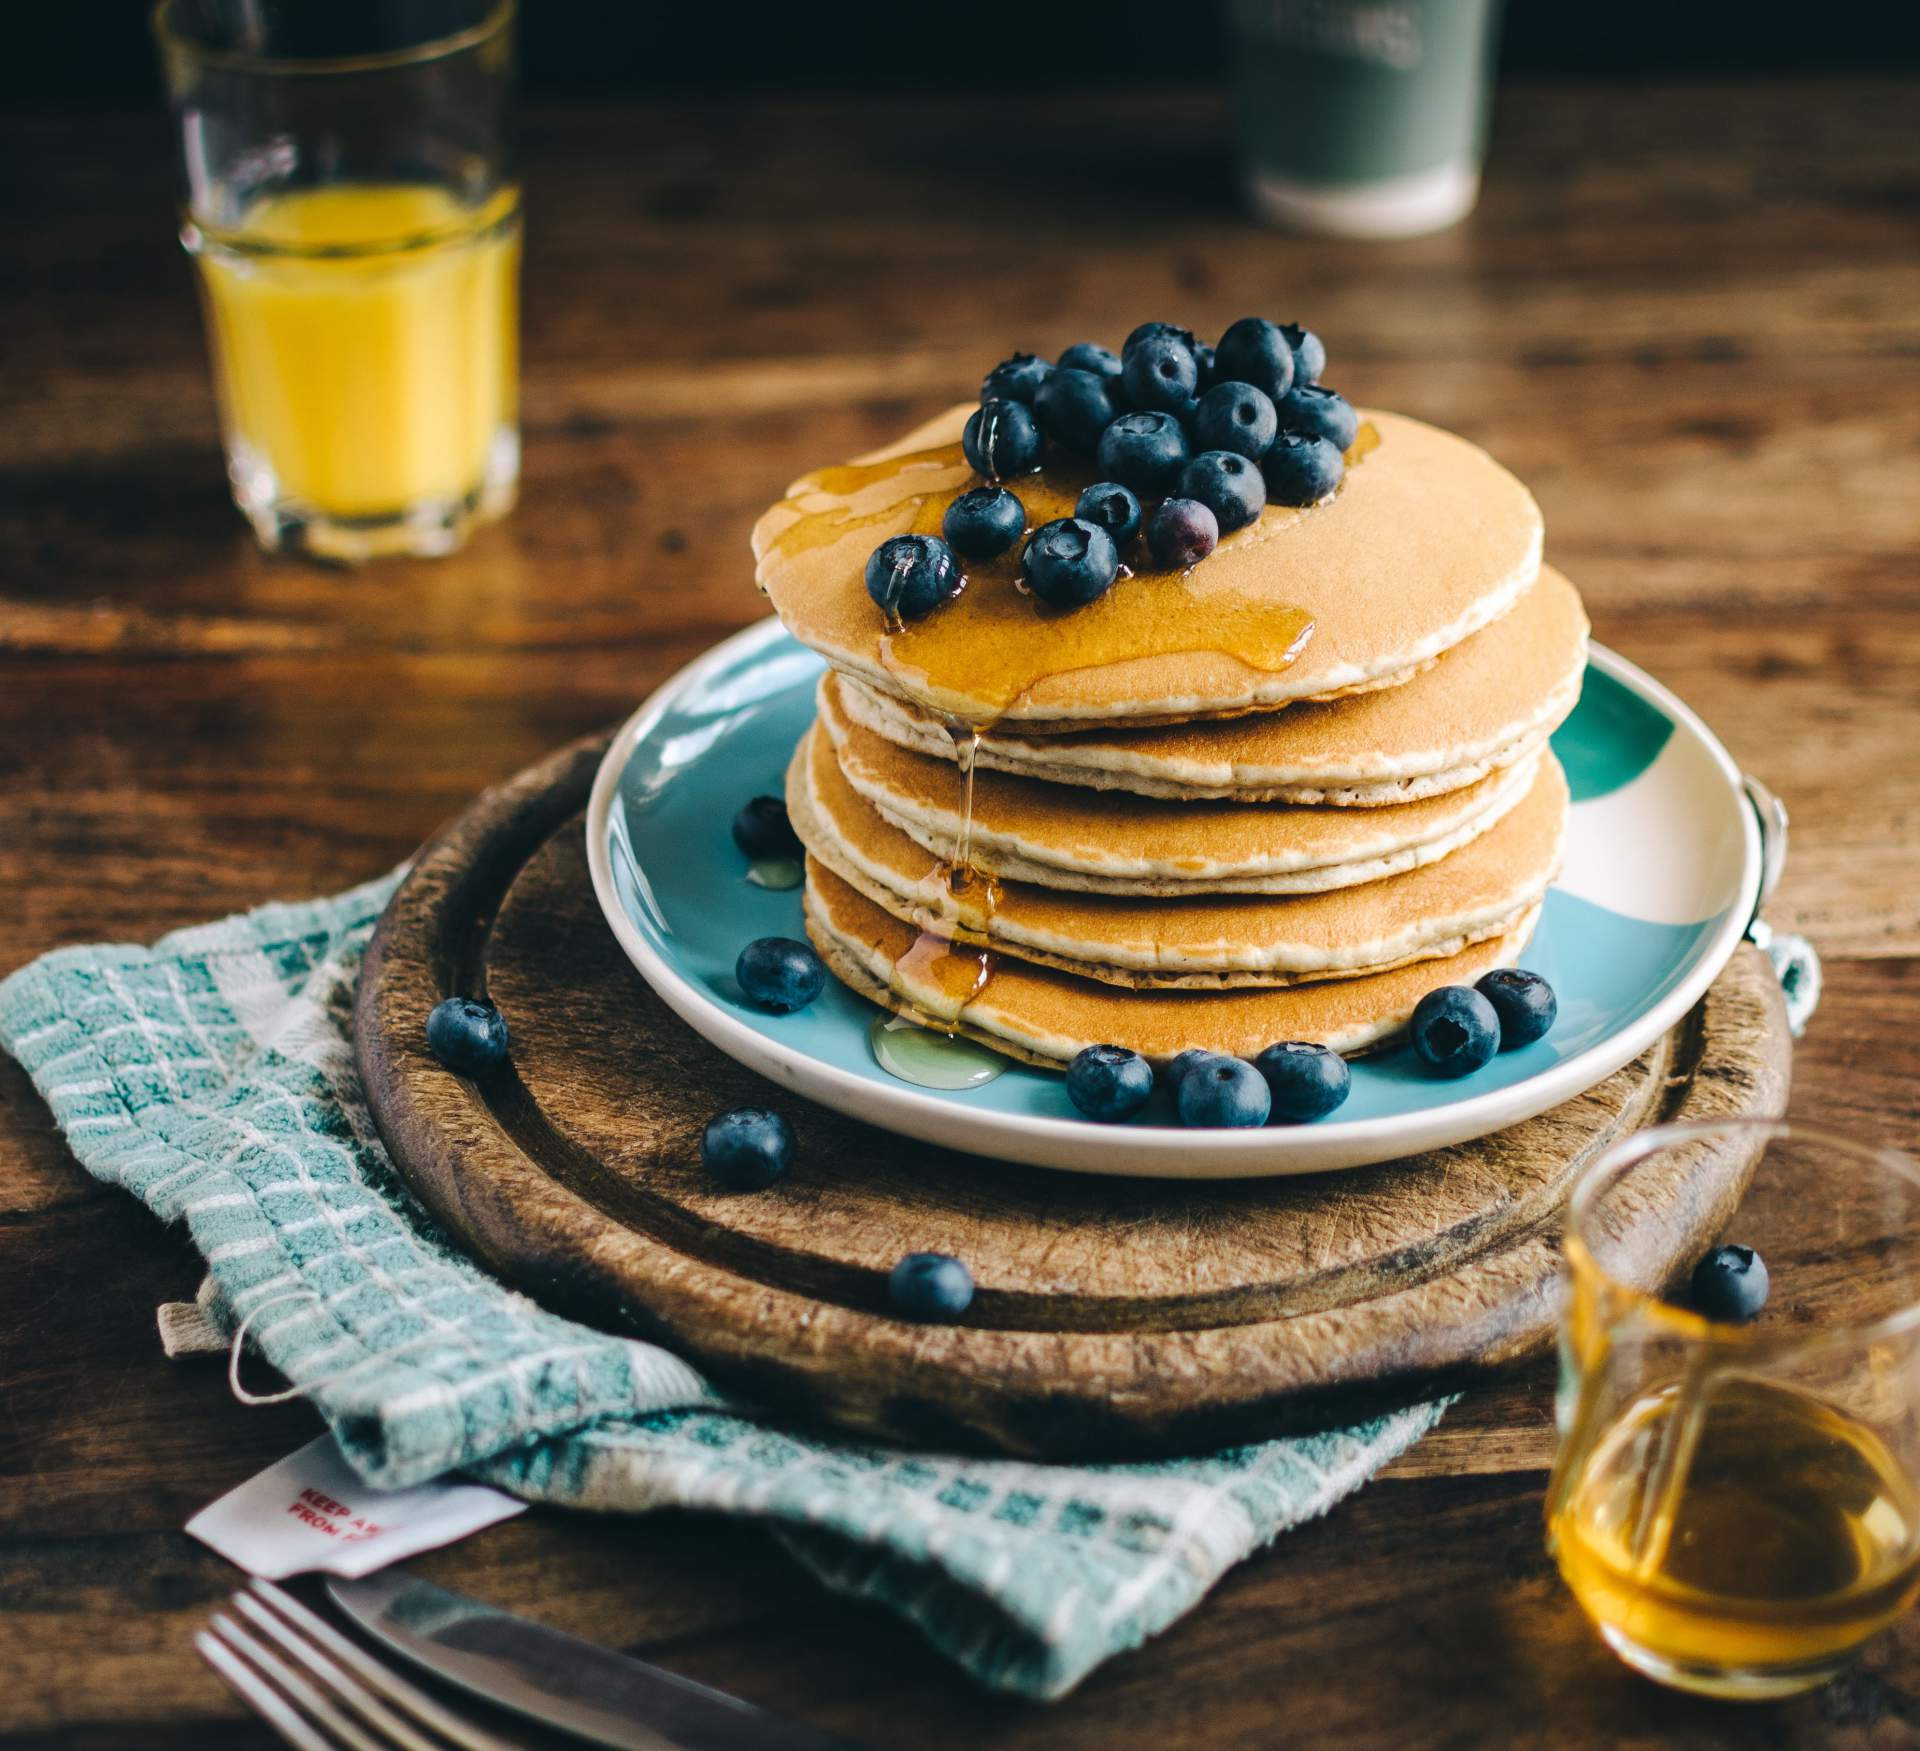 Blueberry and Banana Buckwheat Pancakes